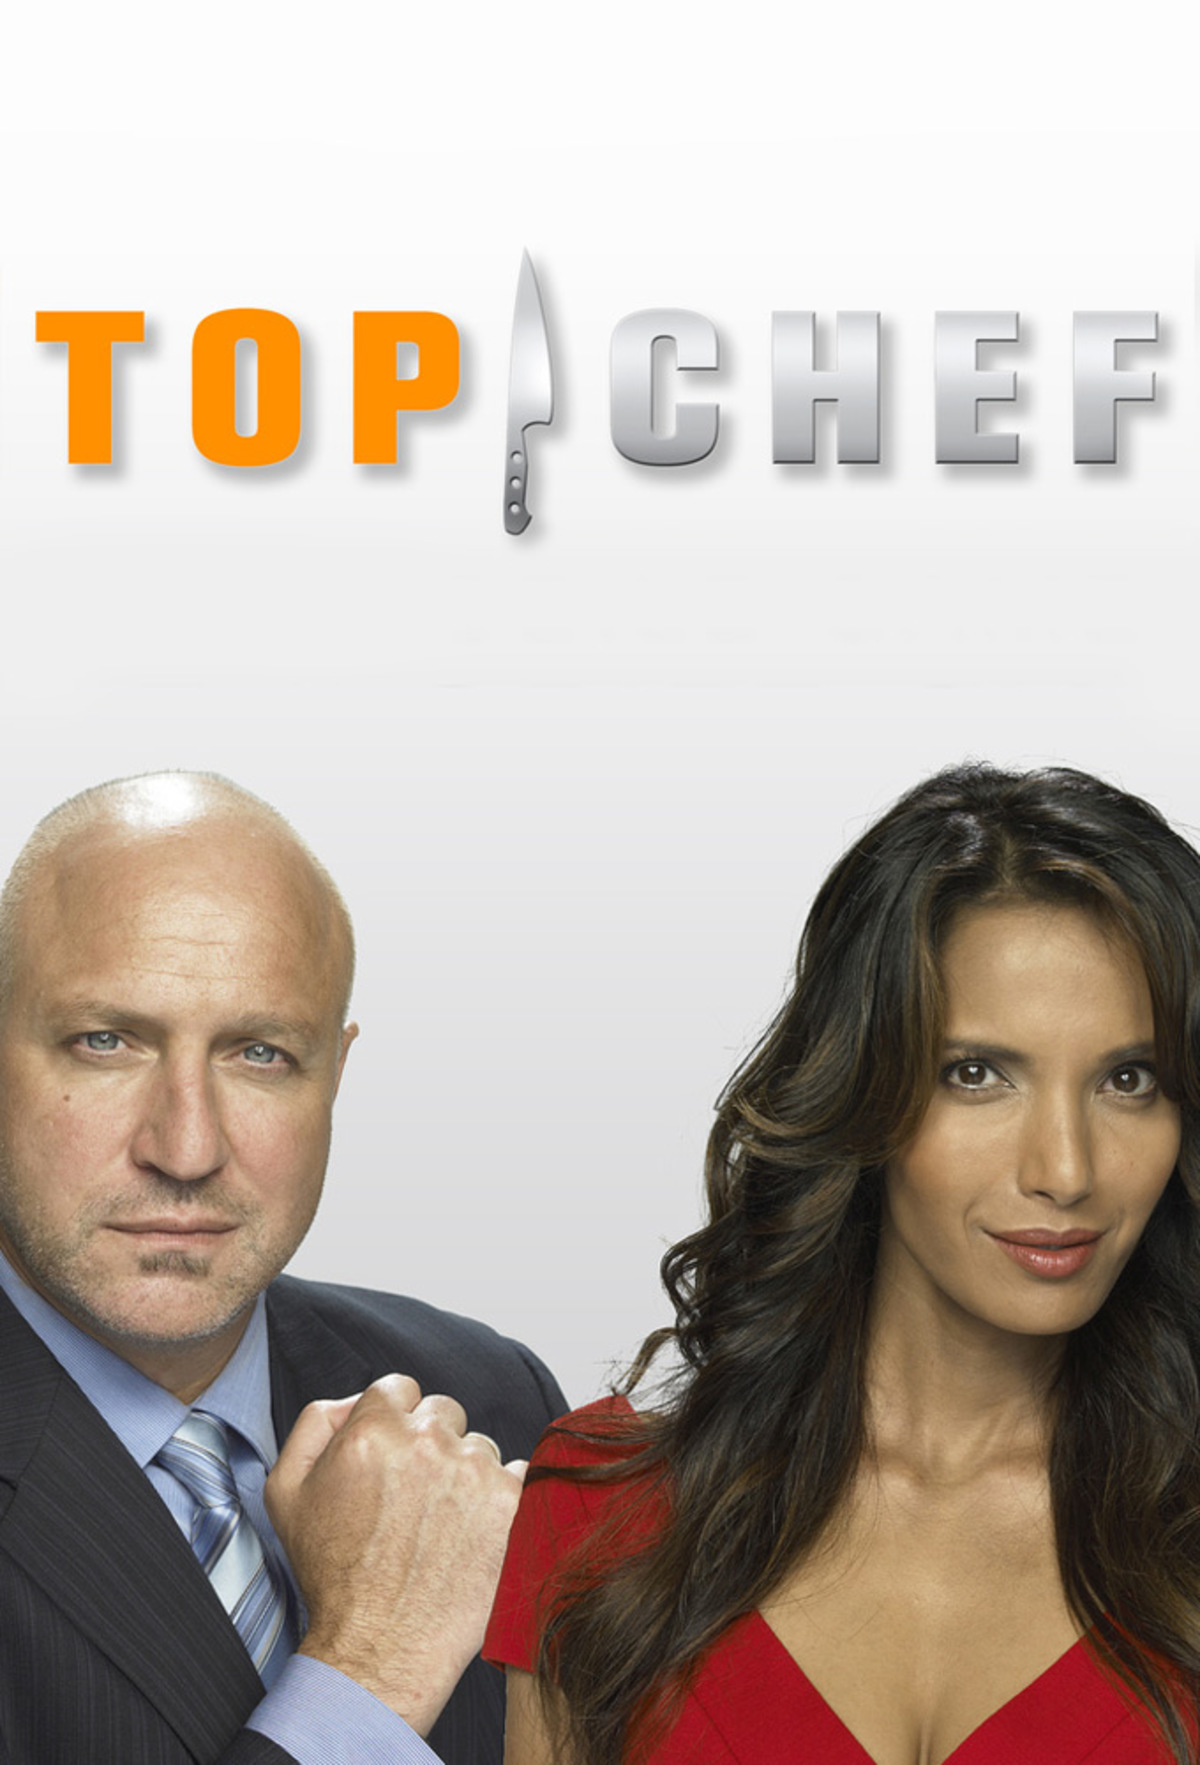 Top Chef - Season 17 Episode 12 - Lucca